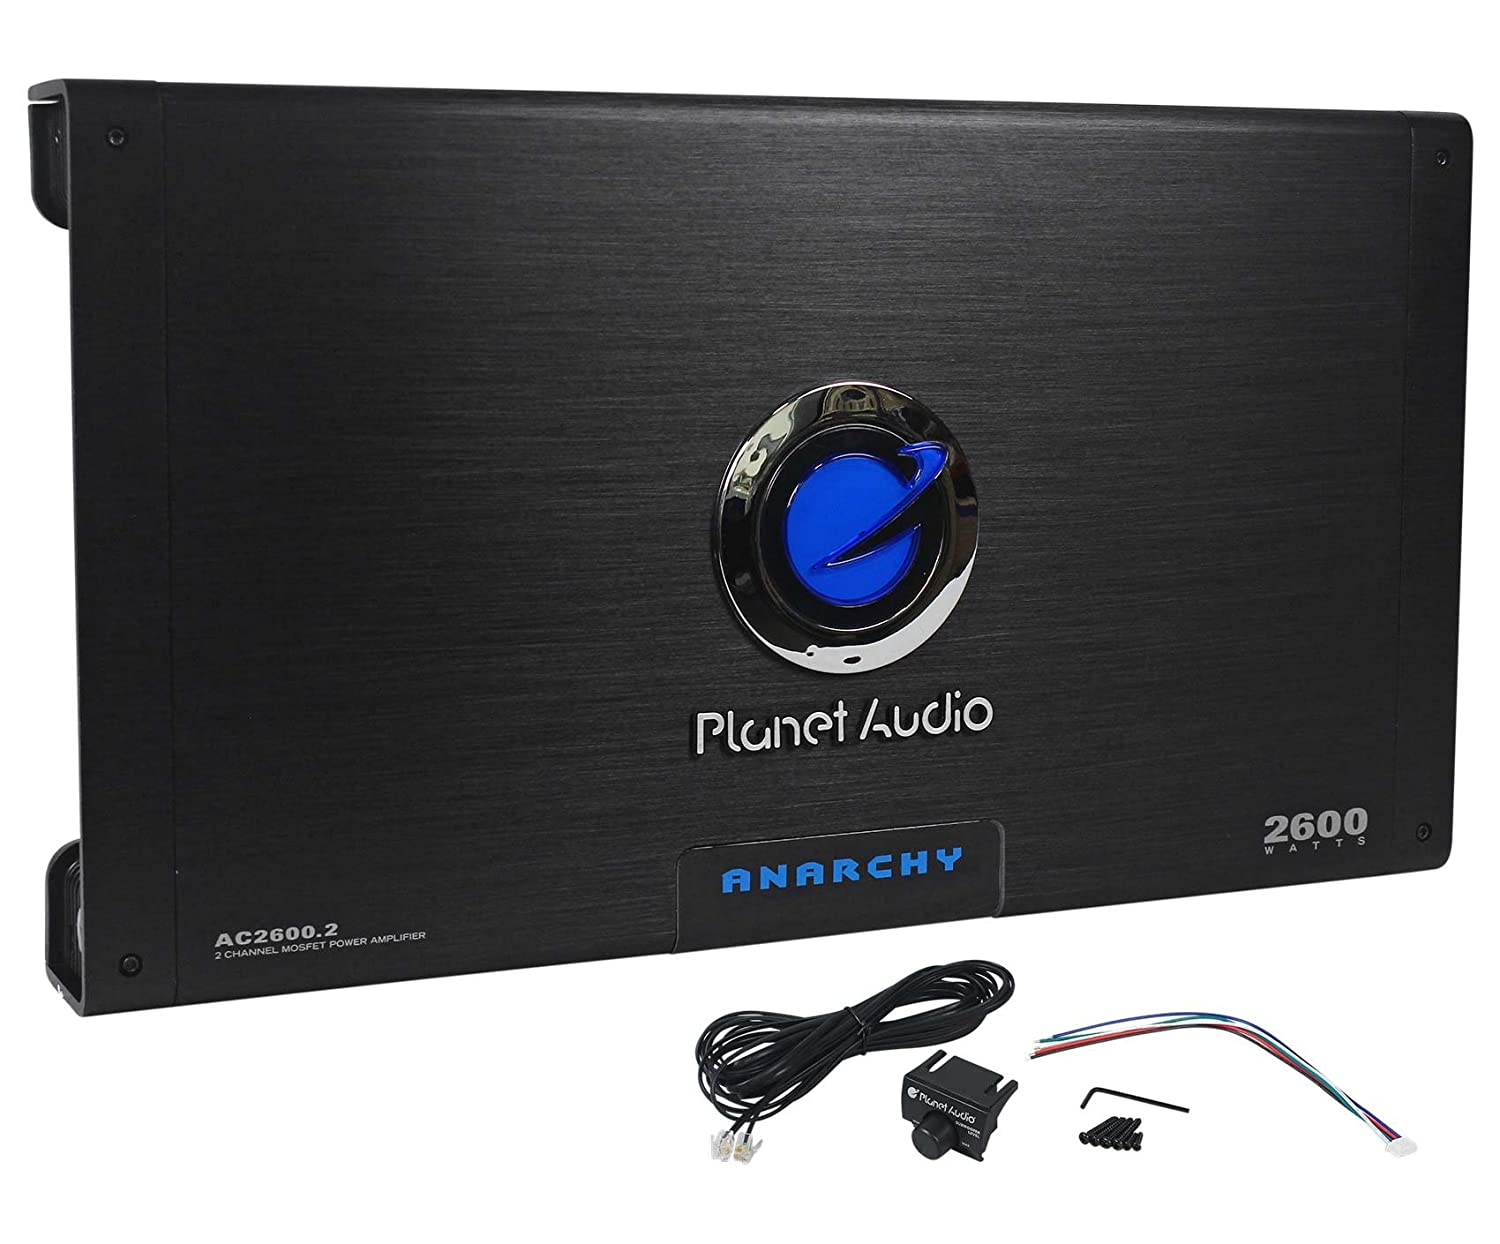 715pwSEBkwL._SL1500_ amazon com planet audio ac2600 2 2600 watt 2 channel car power planet audio ac12d wiring diagram at eliteediting.co